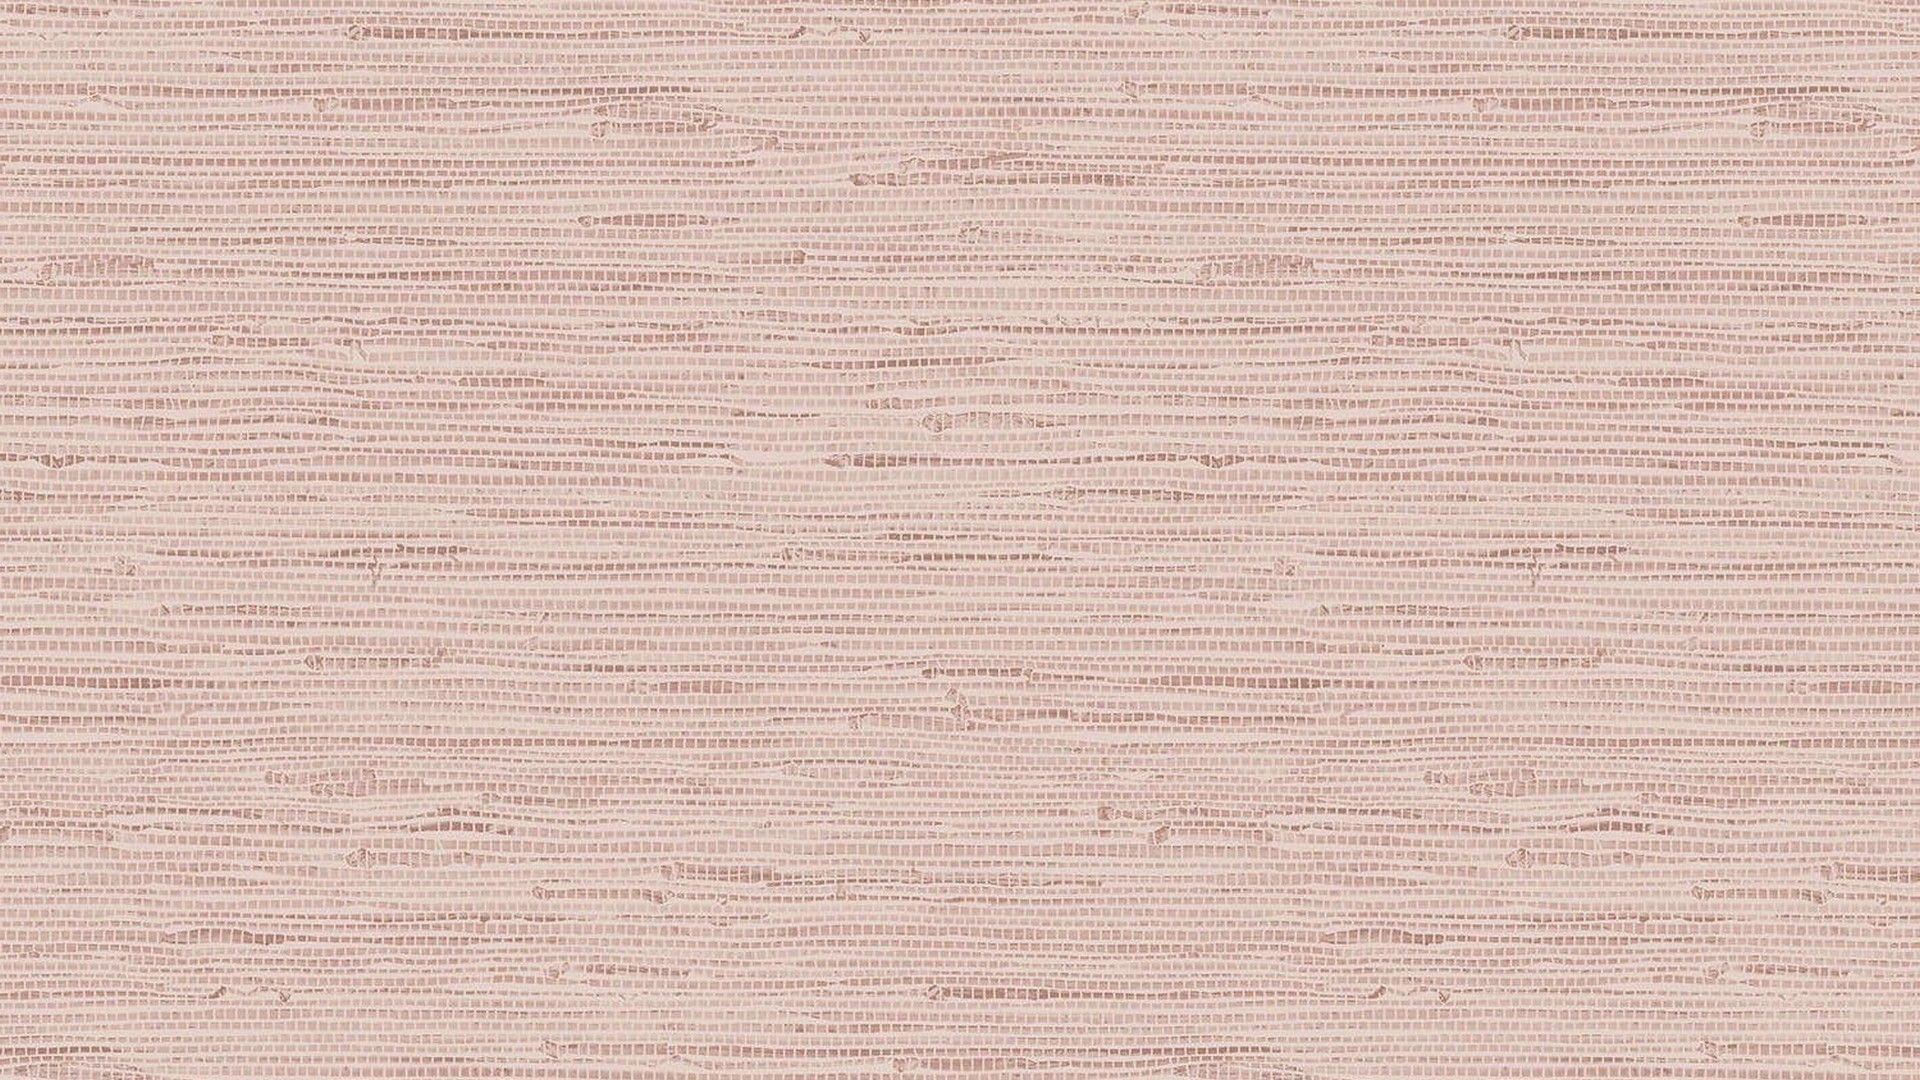 Rose Gold Wallpaper